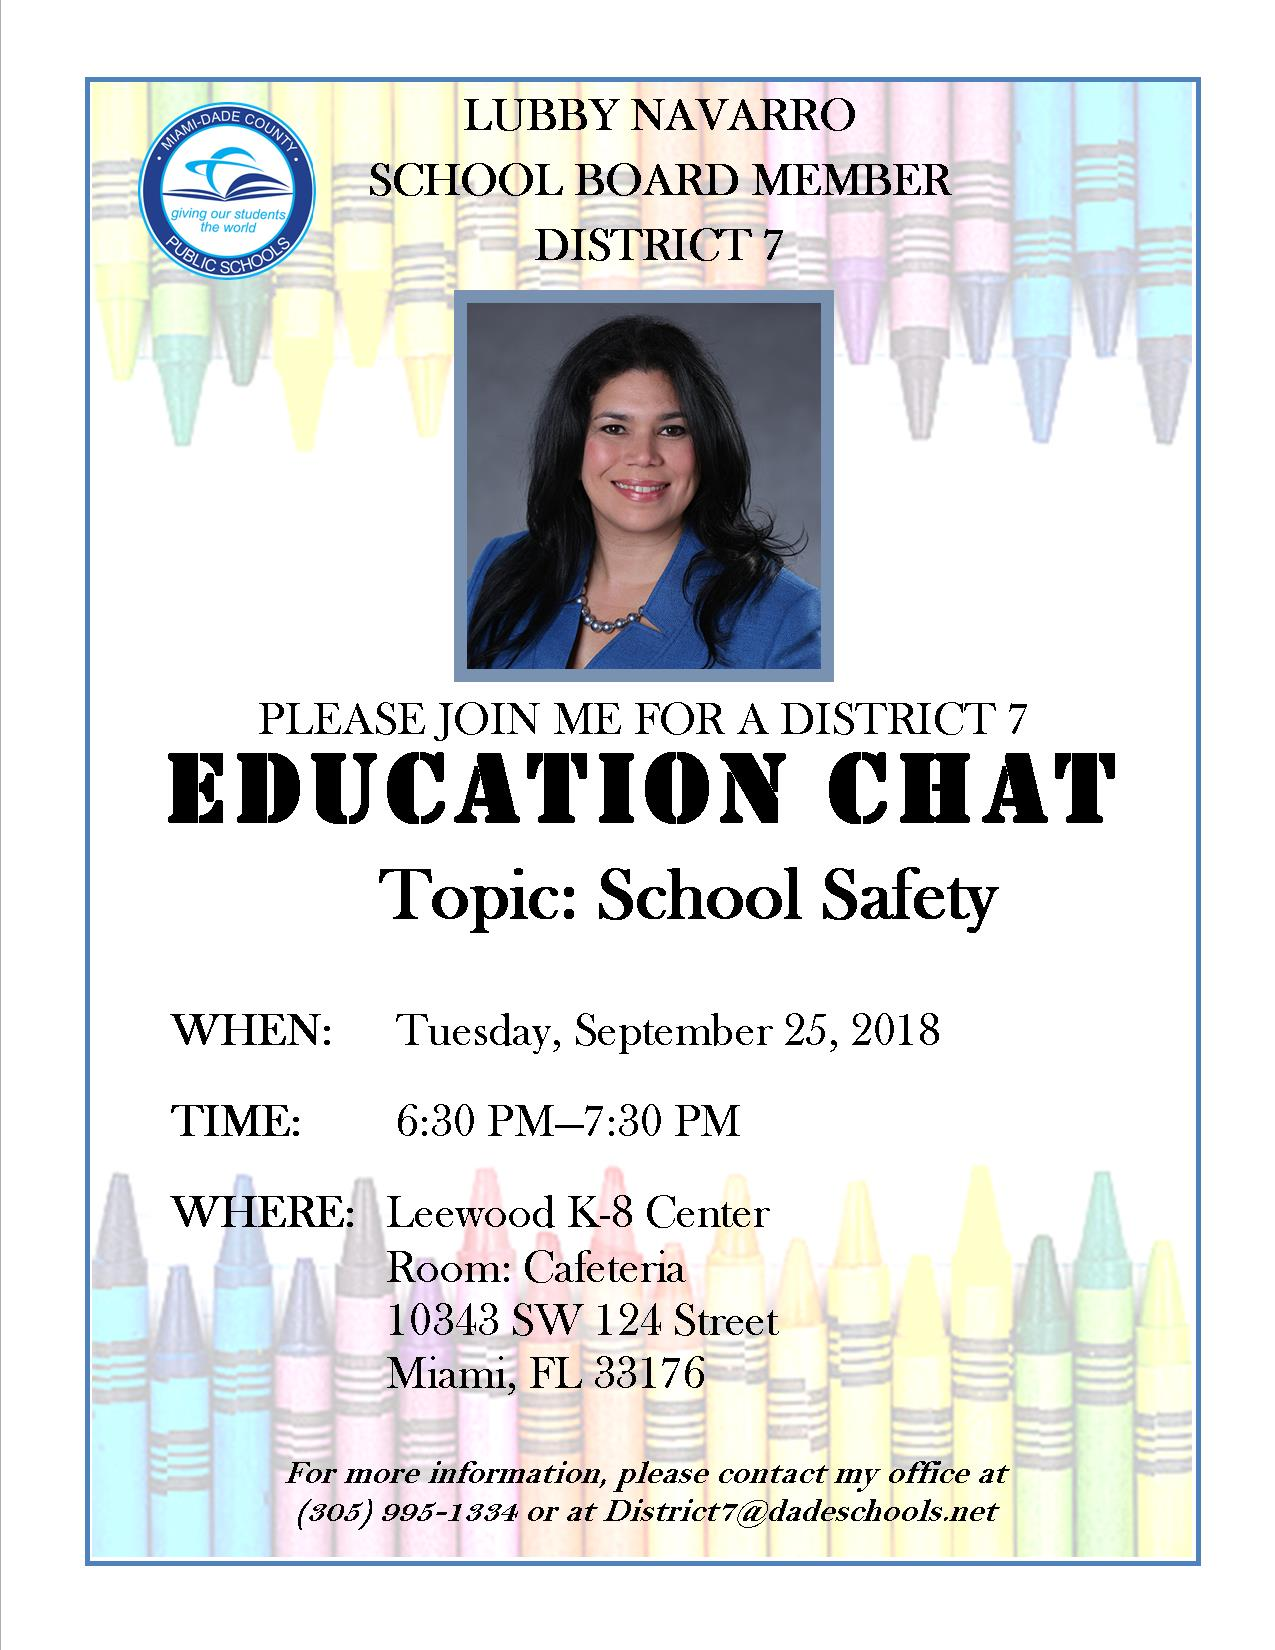 Education Chat with Lubby Navarro @ Leewood K-8 Center Cafeteria